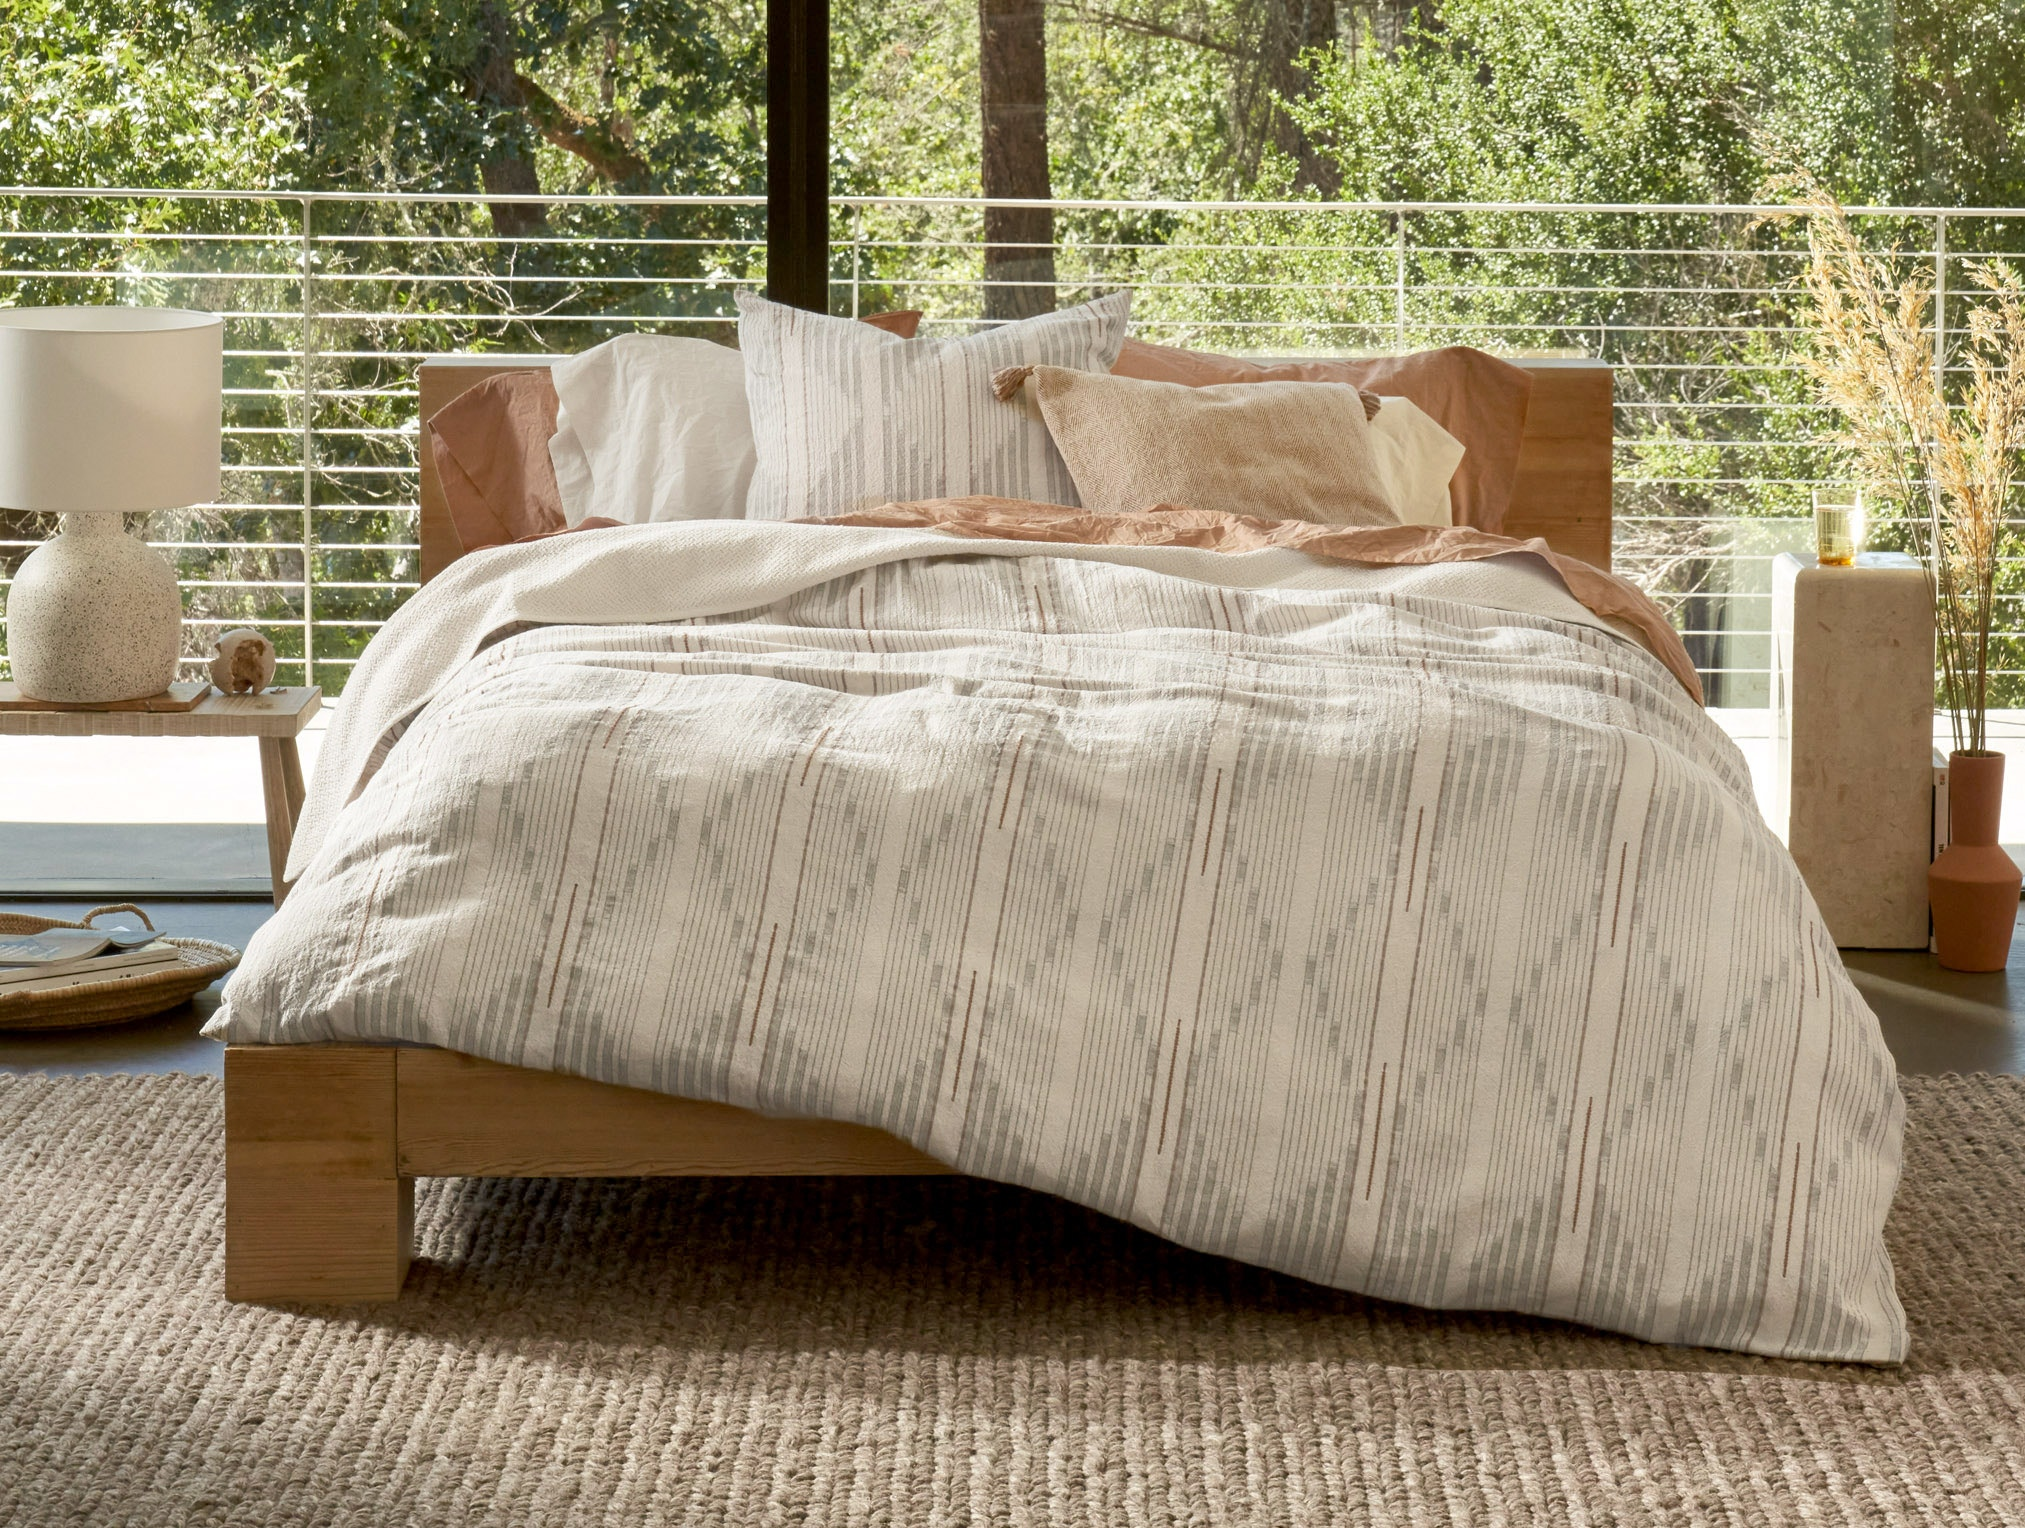 Morelia Organic Duvet Cover styled with Organic Crinled Percale Sheets and Presidio Organic Pillow Cover